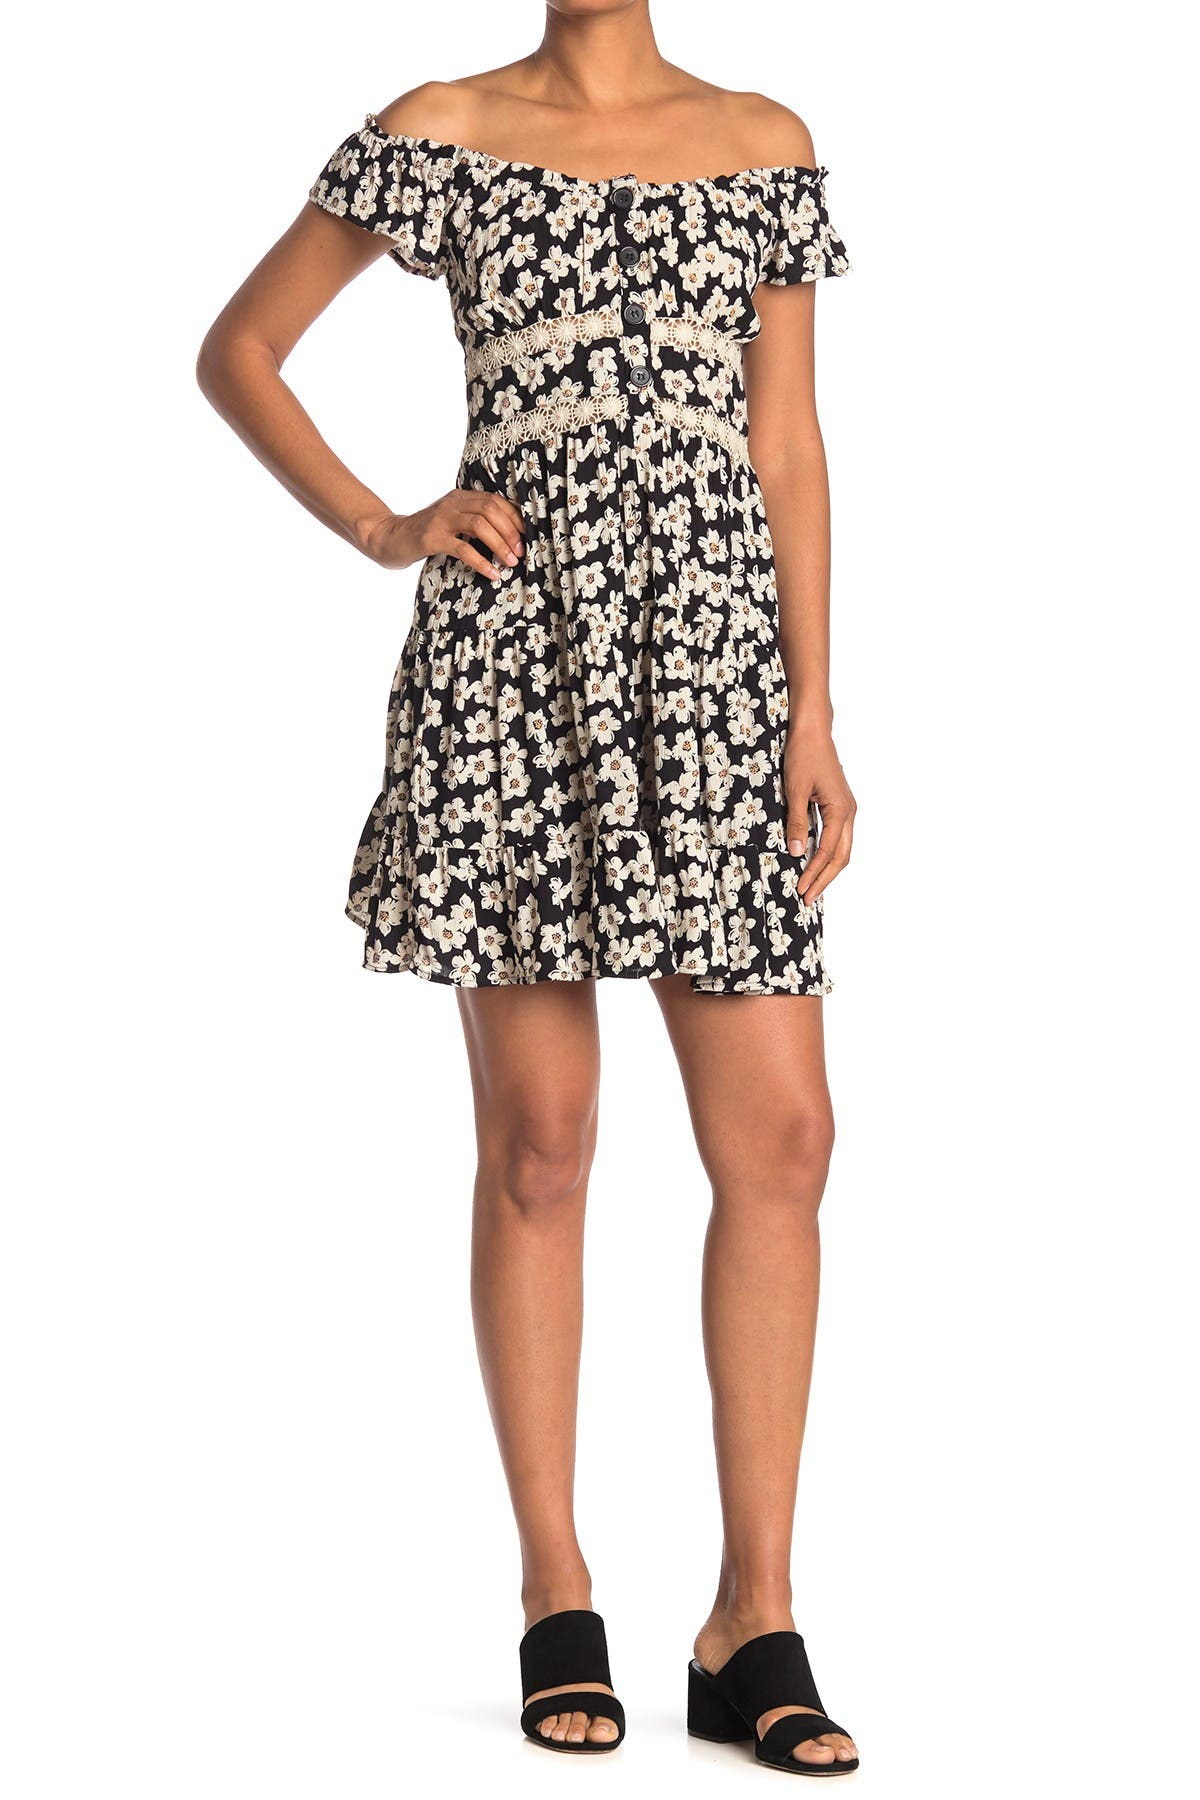 Image of Angie Tiered Floral Print Lace Trim Dress